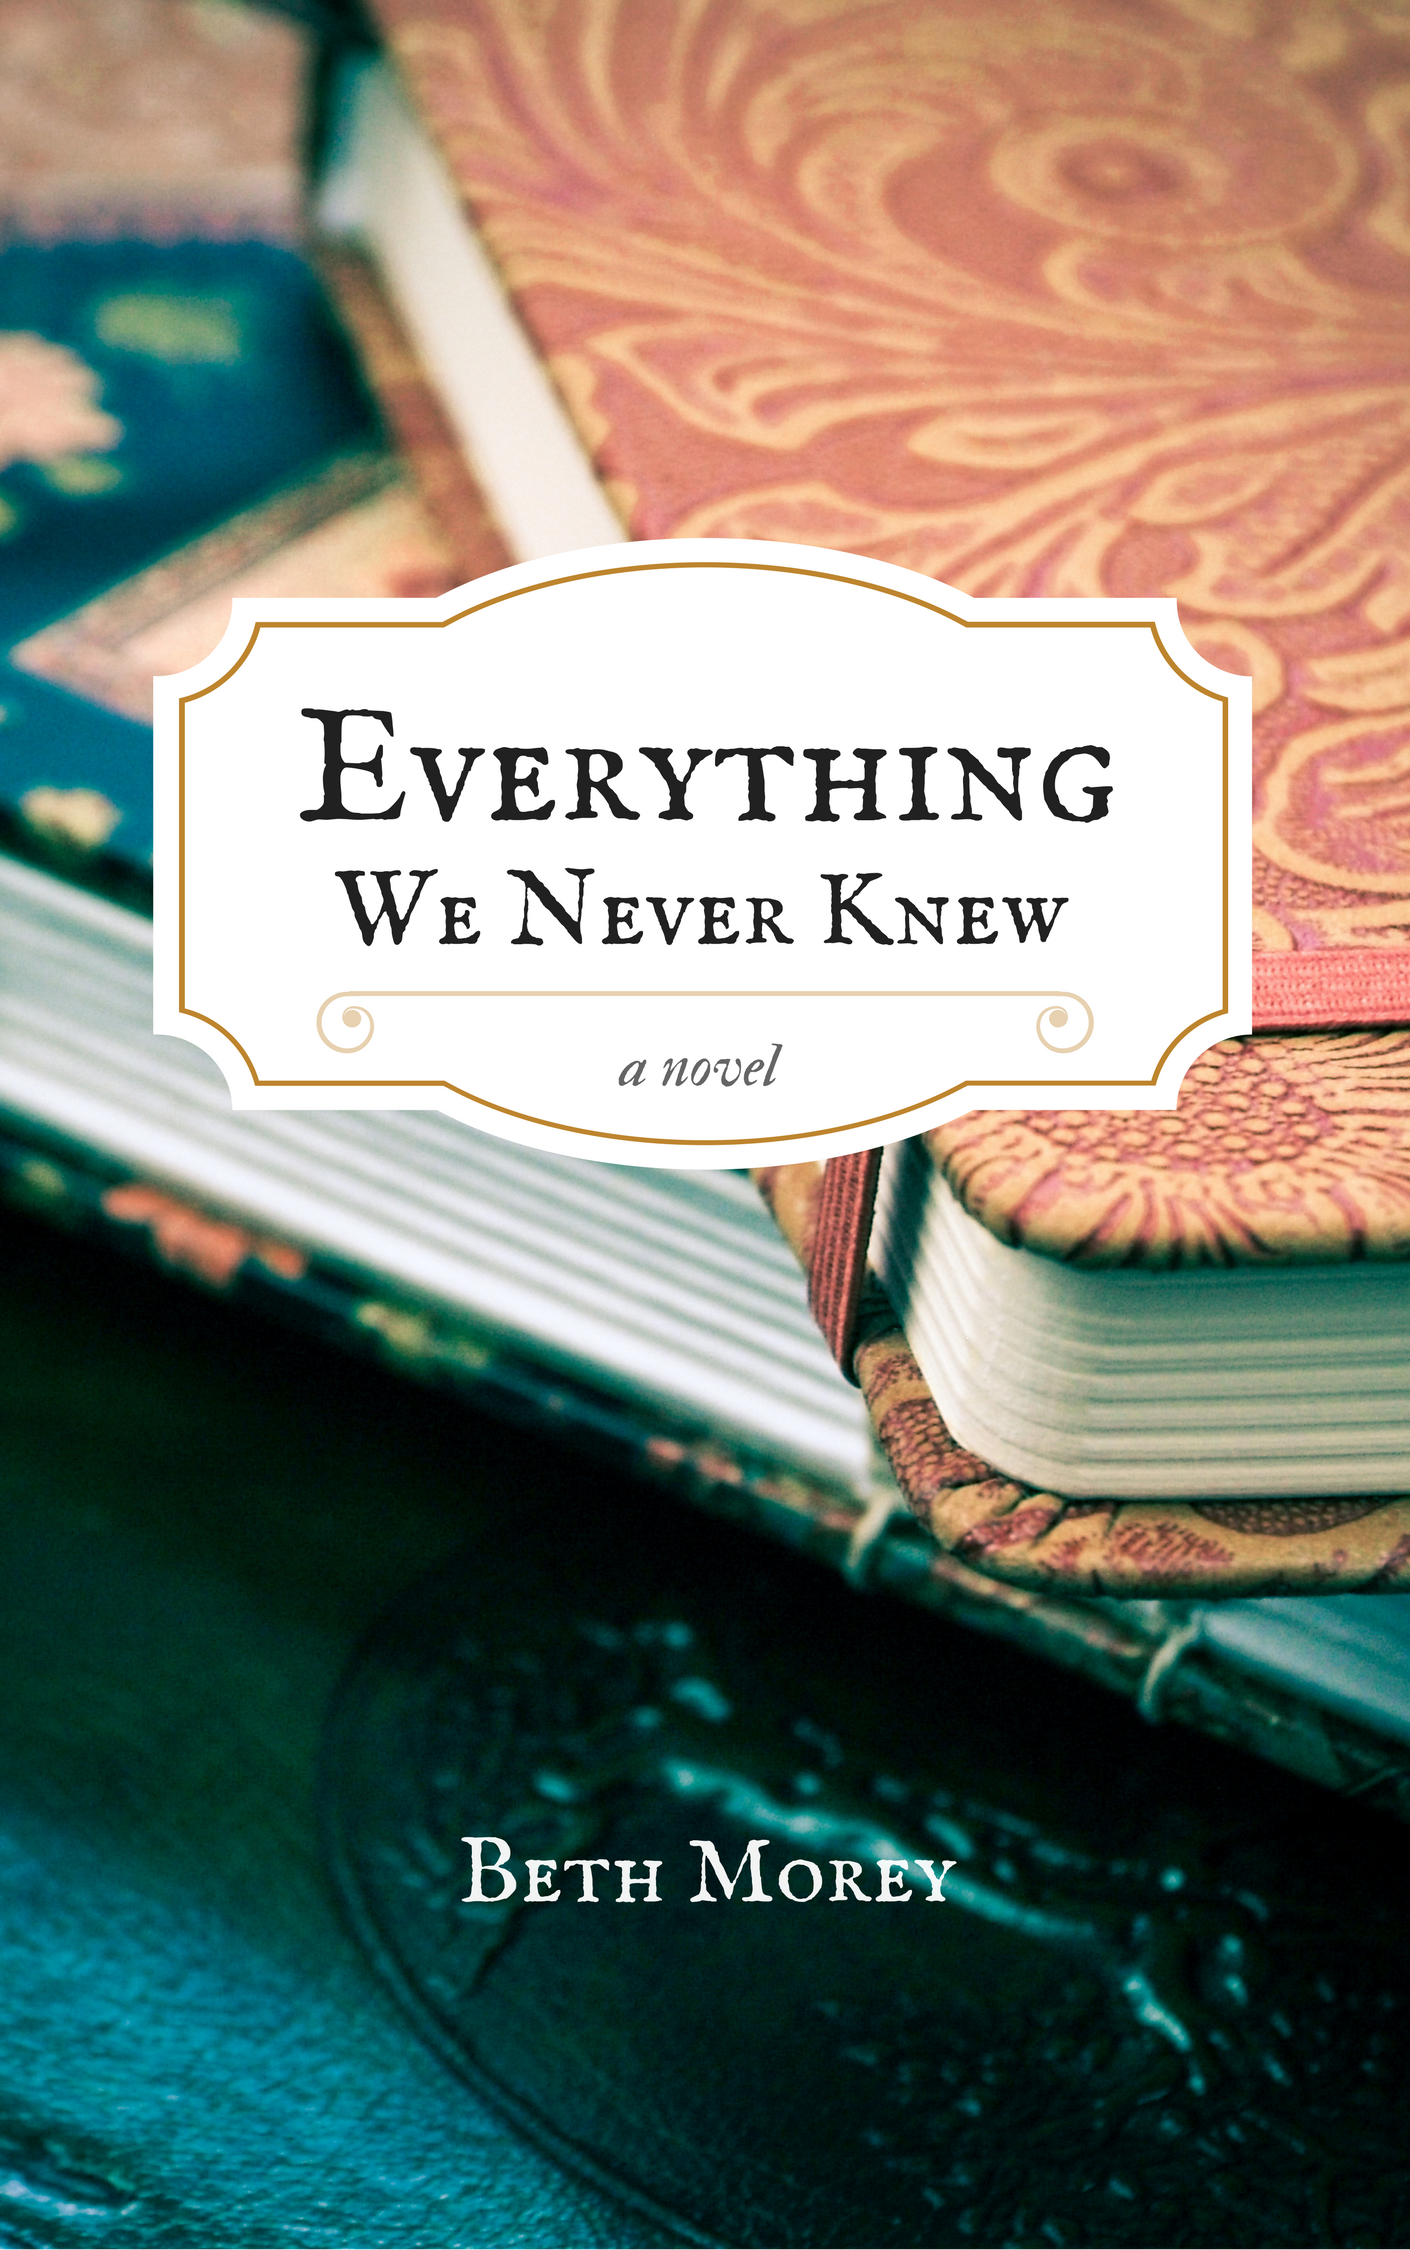 everything-we-never-knew-book-morey